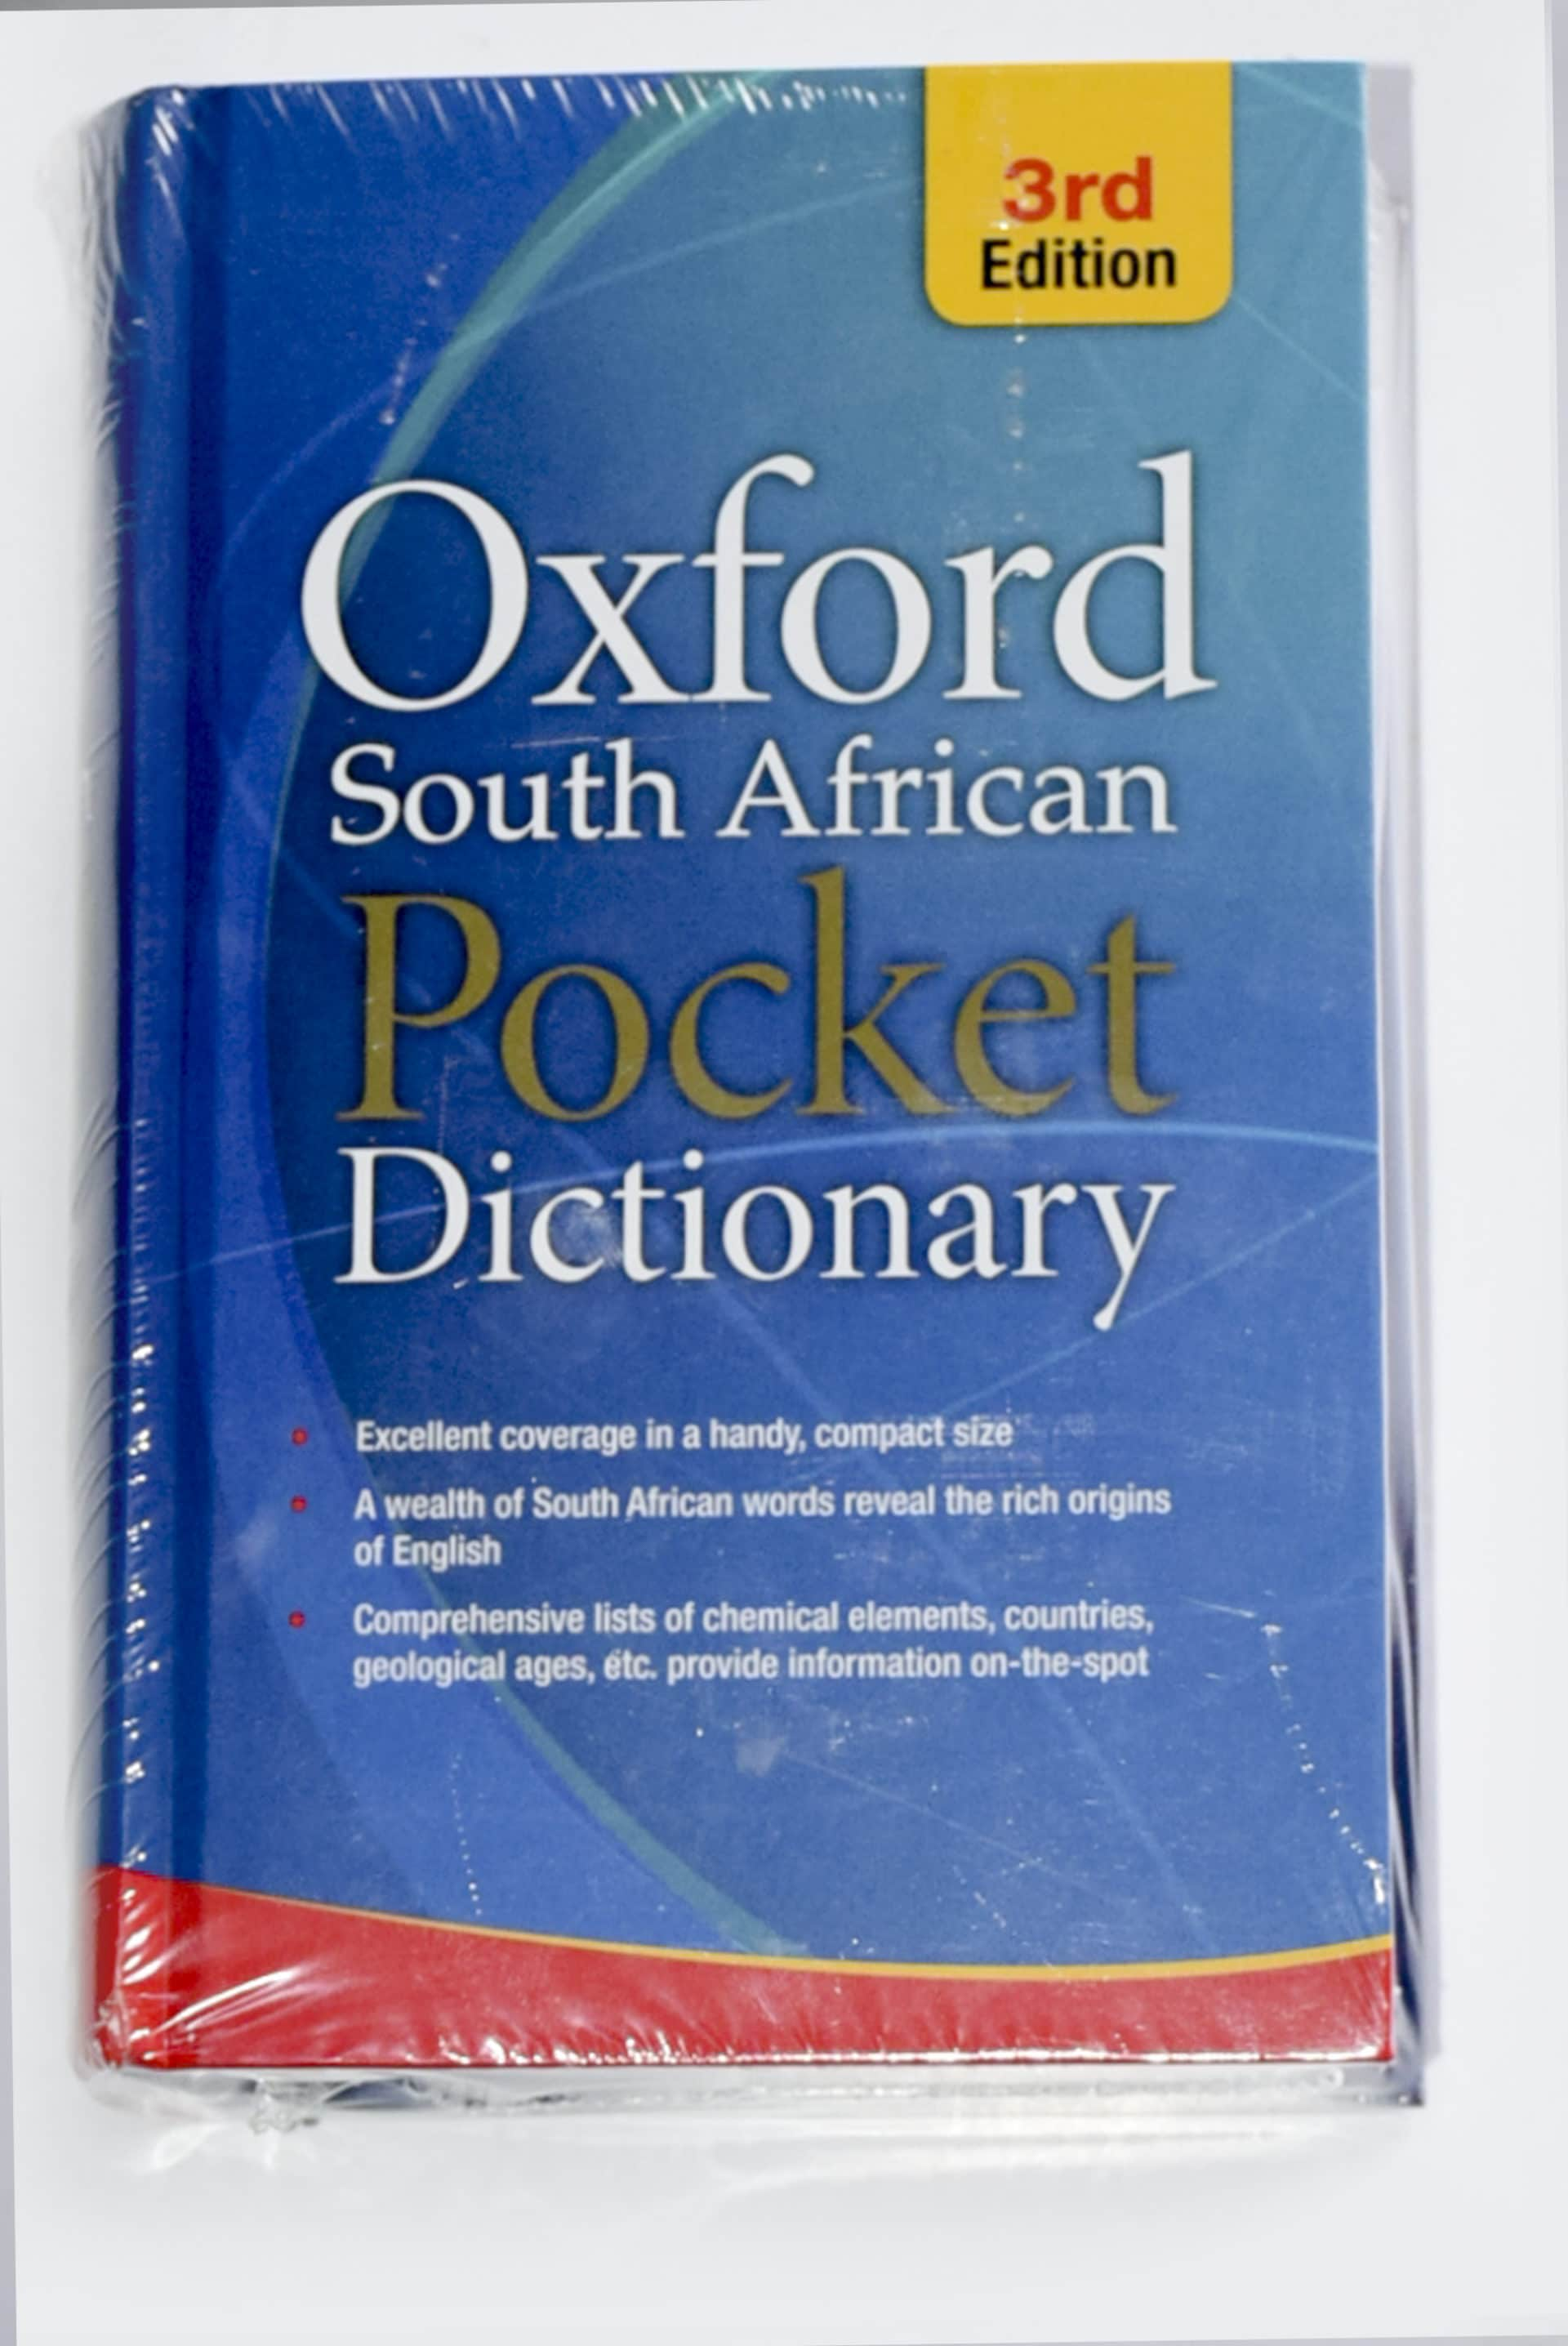 Dictionary Oxford Large Pocket Hard Cover 3rd Edition 1